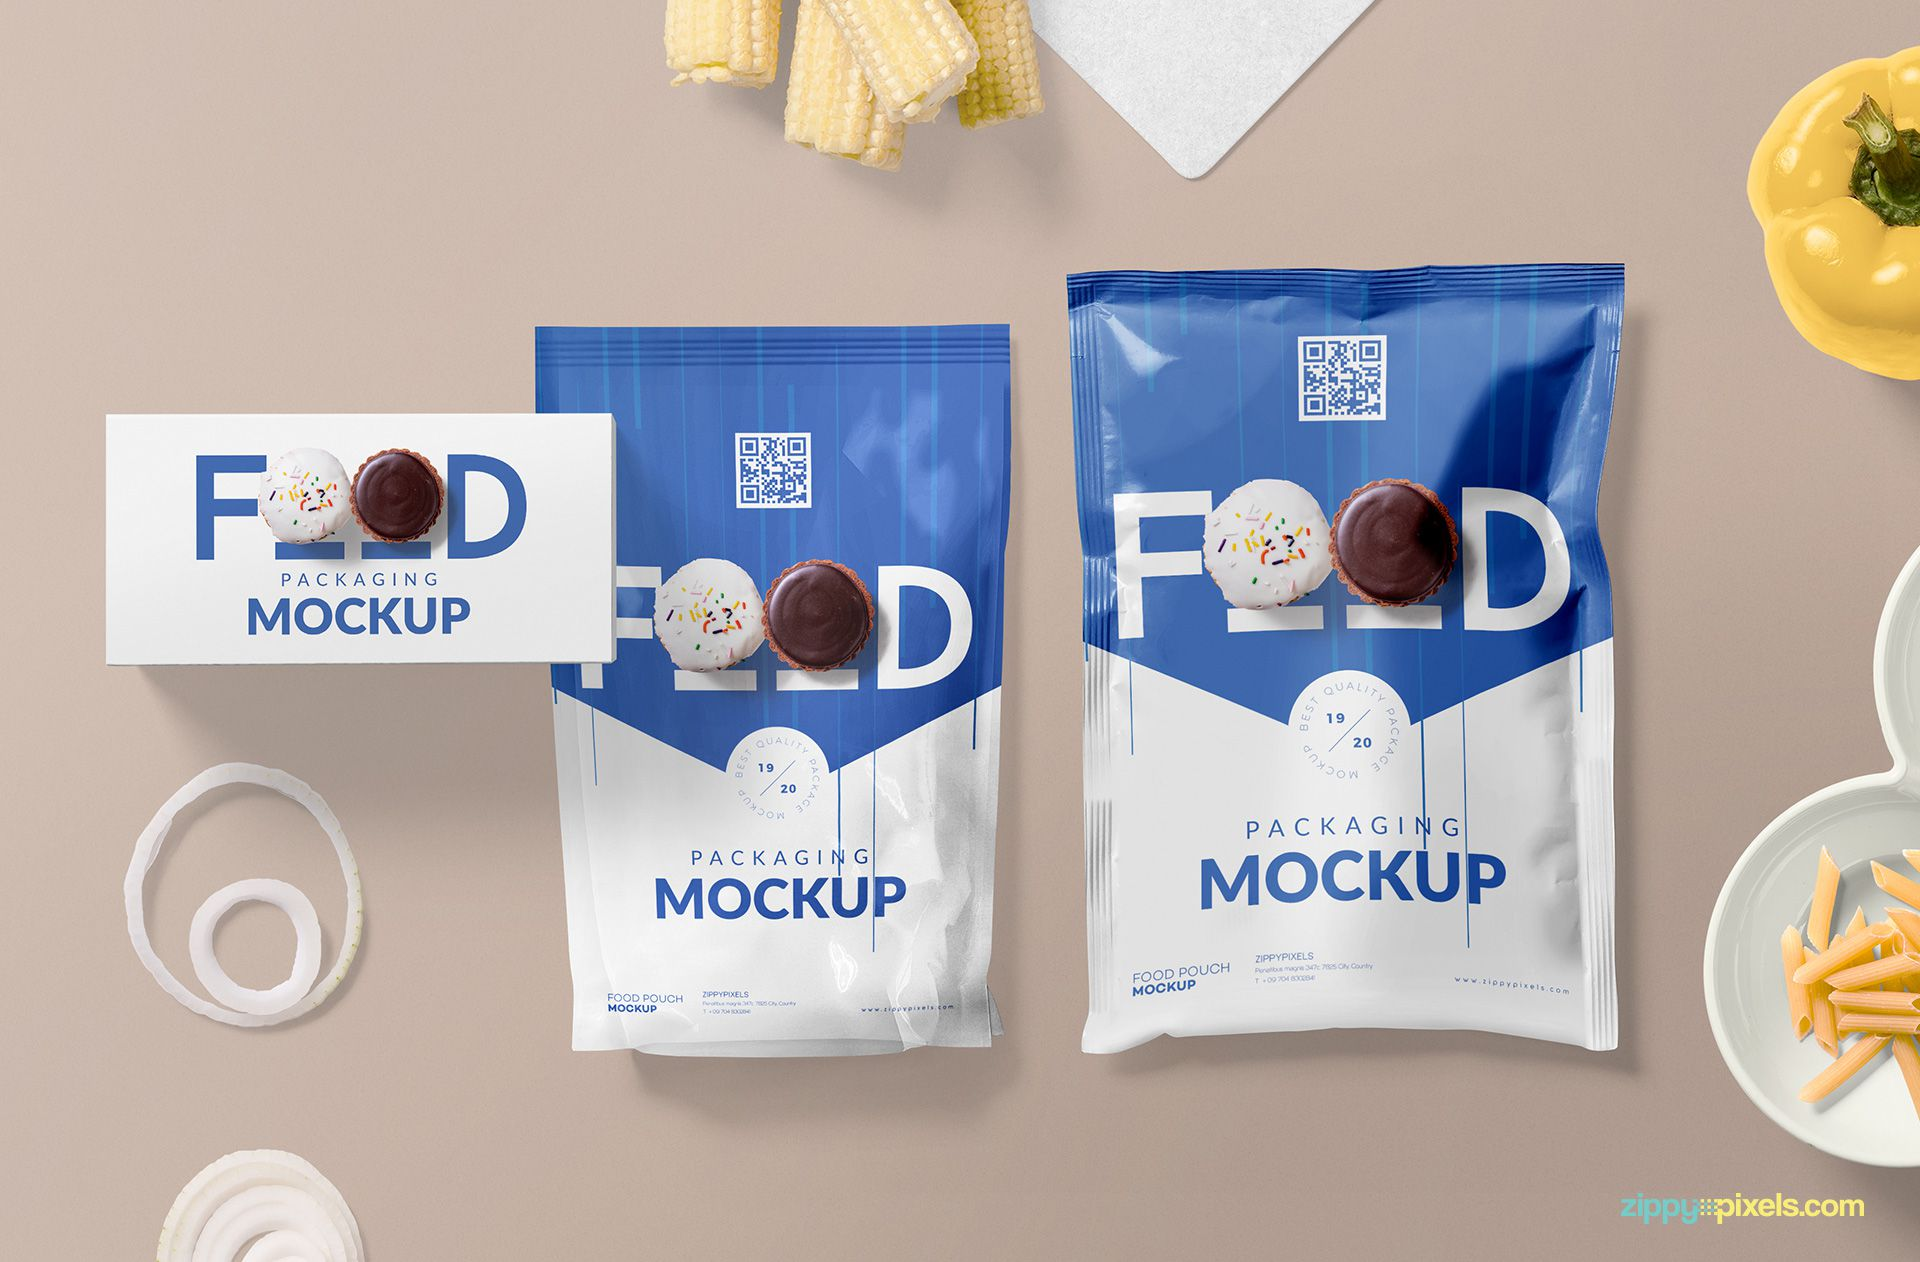 Free packaging mockup for food items.